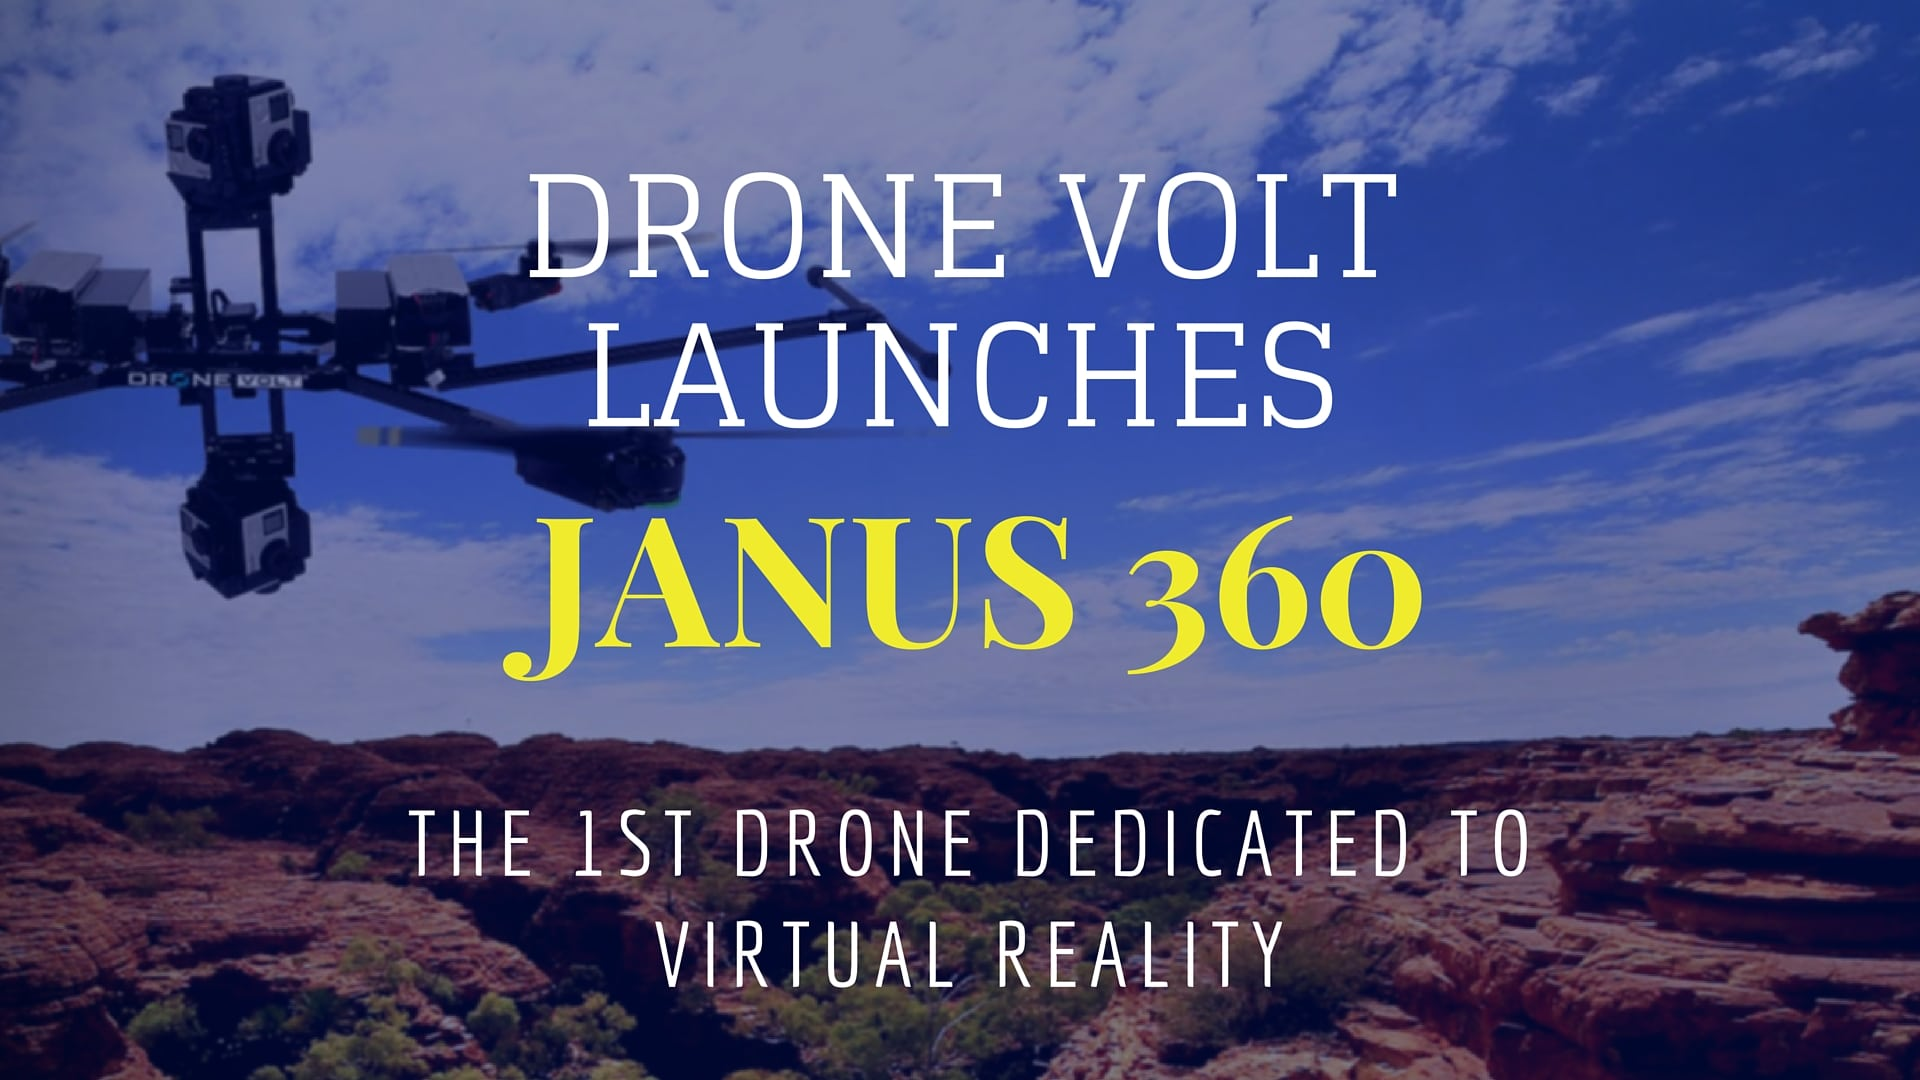 Drone Volt Launches Janus 360, Drone Able To Produce Virtual Reality Video Content